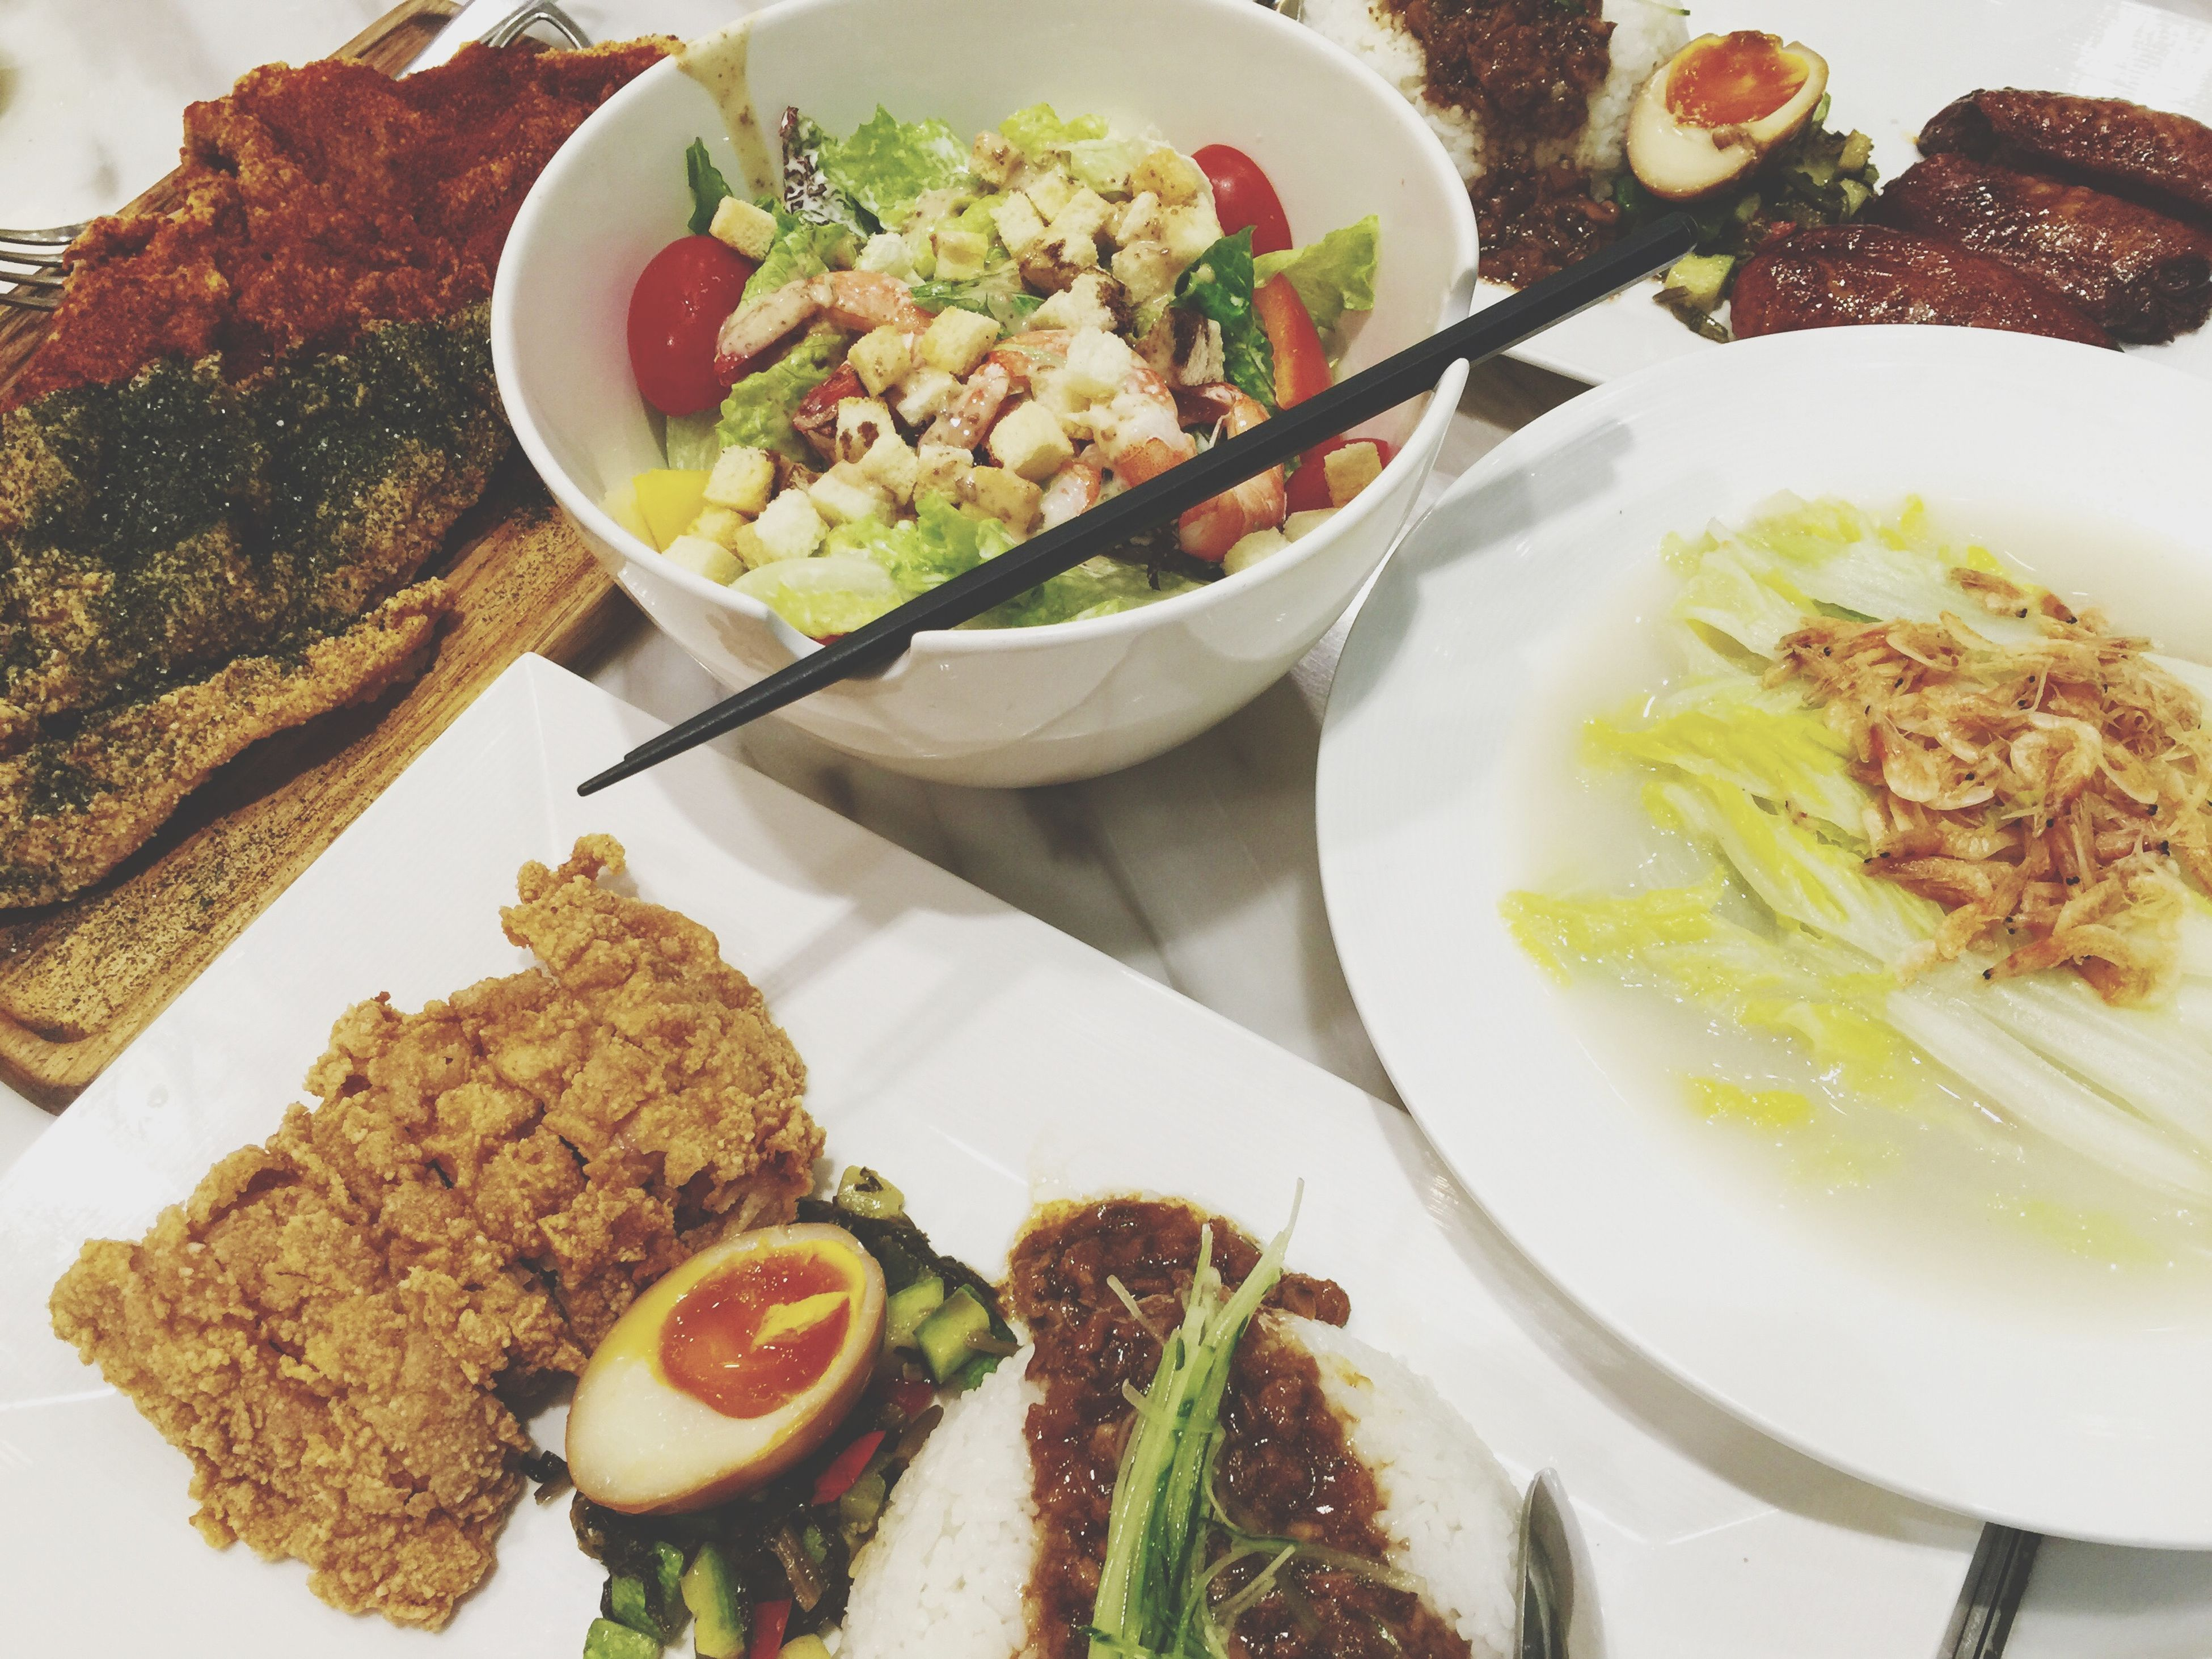 food and drink, food, freshness, ready-to-eat, plate, indoors, meal, serving size, healthy eating, still life, meat, close-up, indulgence, salad, table, served, high angle view, vegetable, healthy lifestyle, rice - food staple